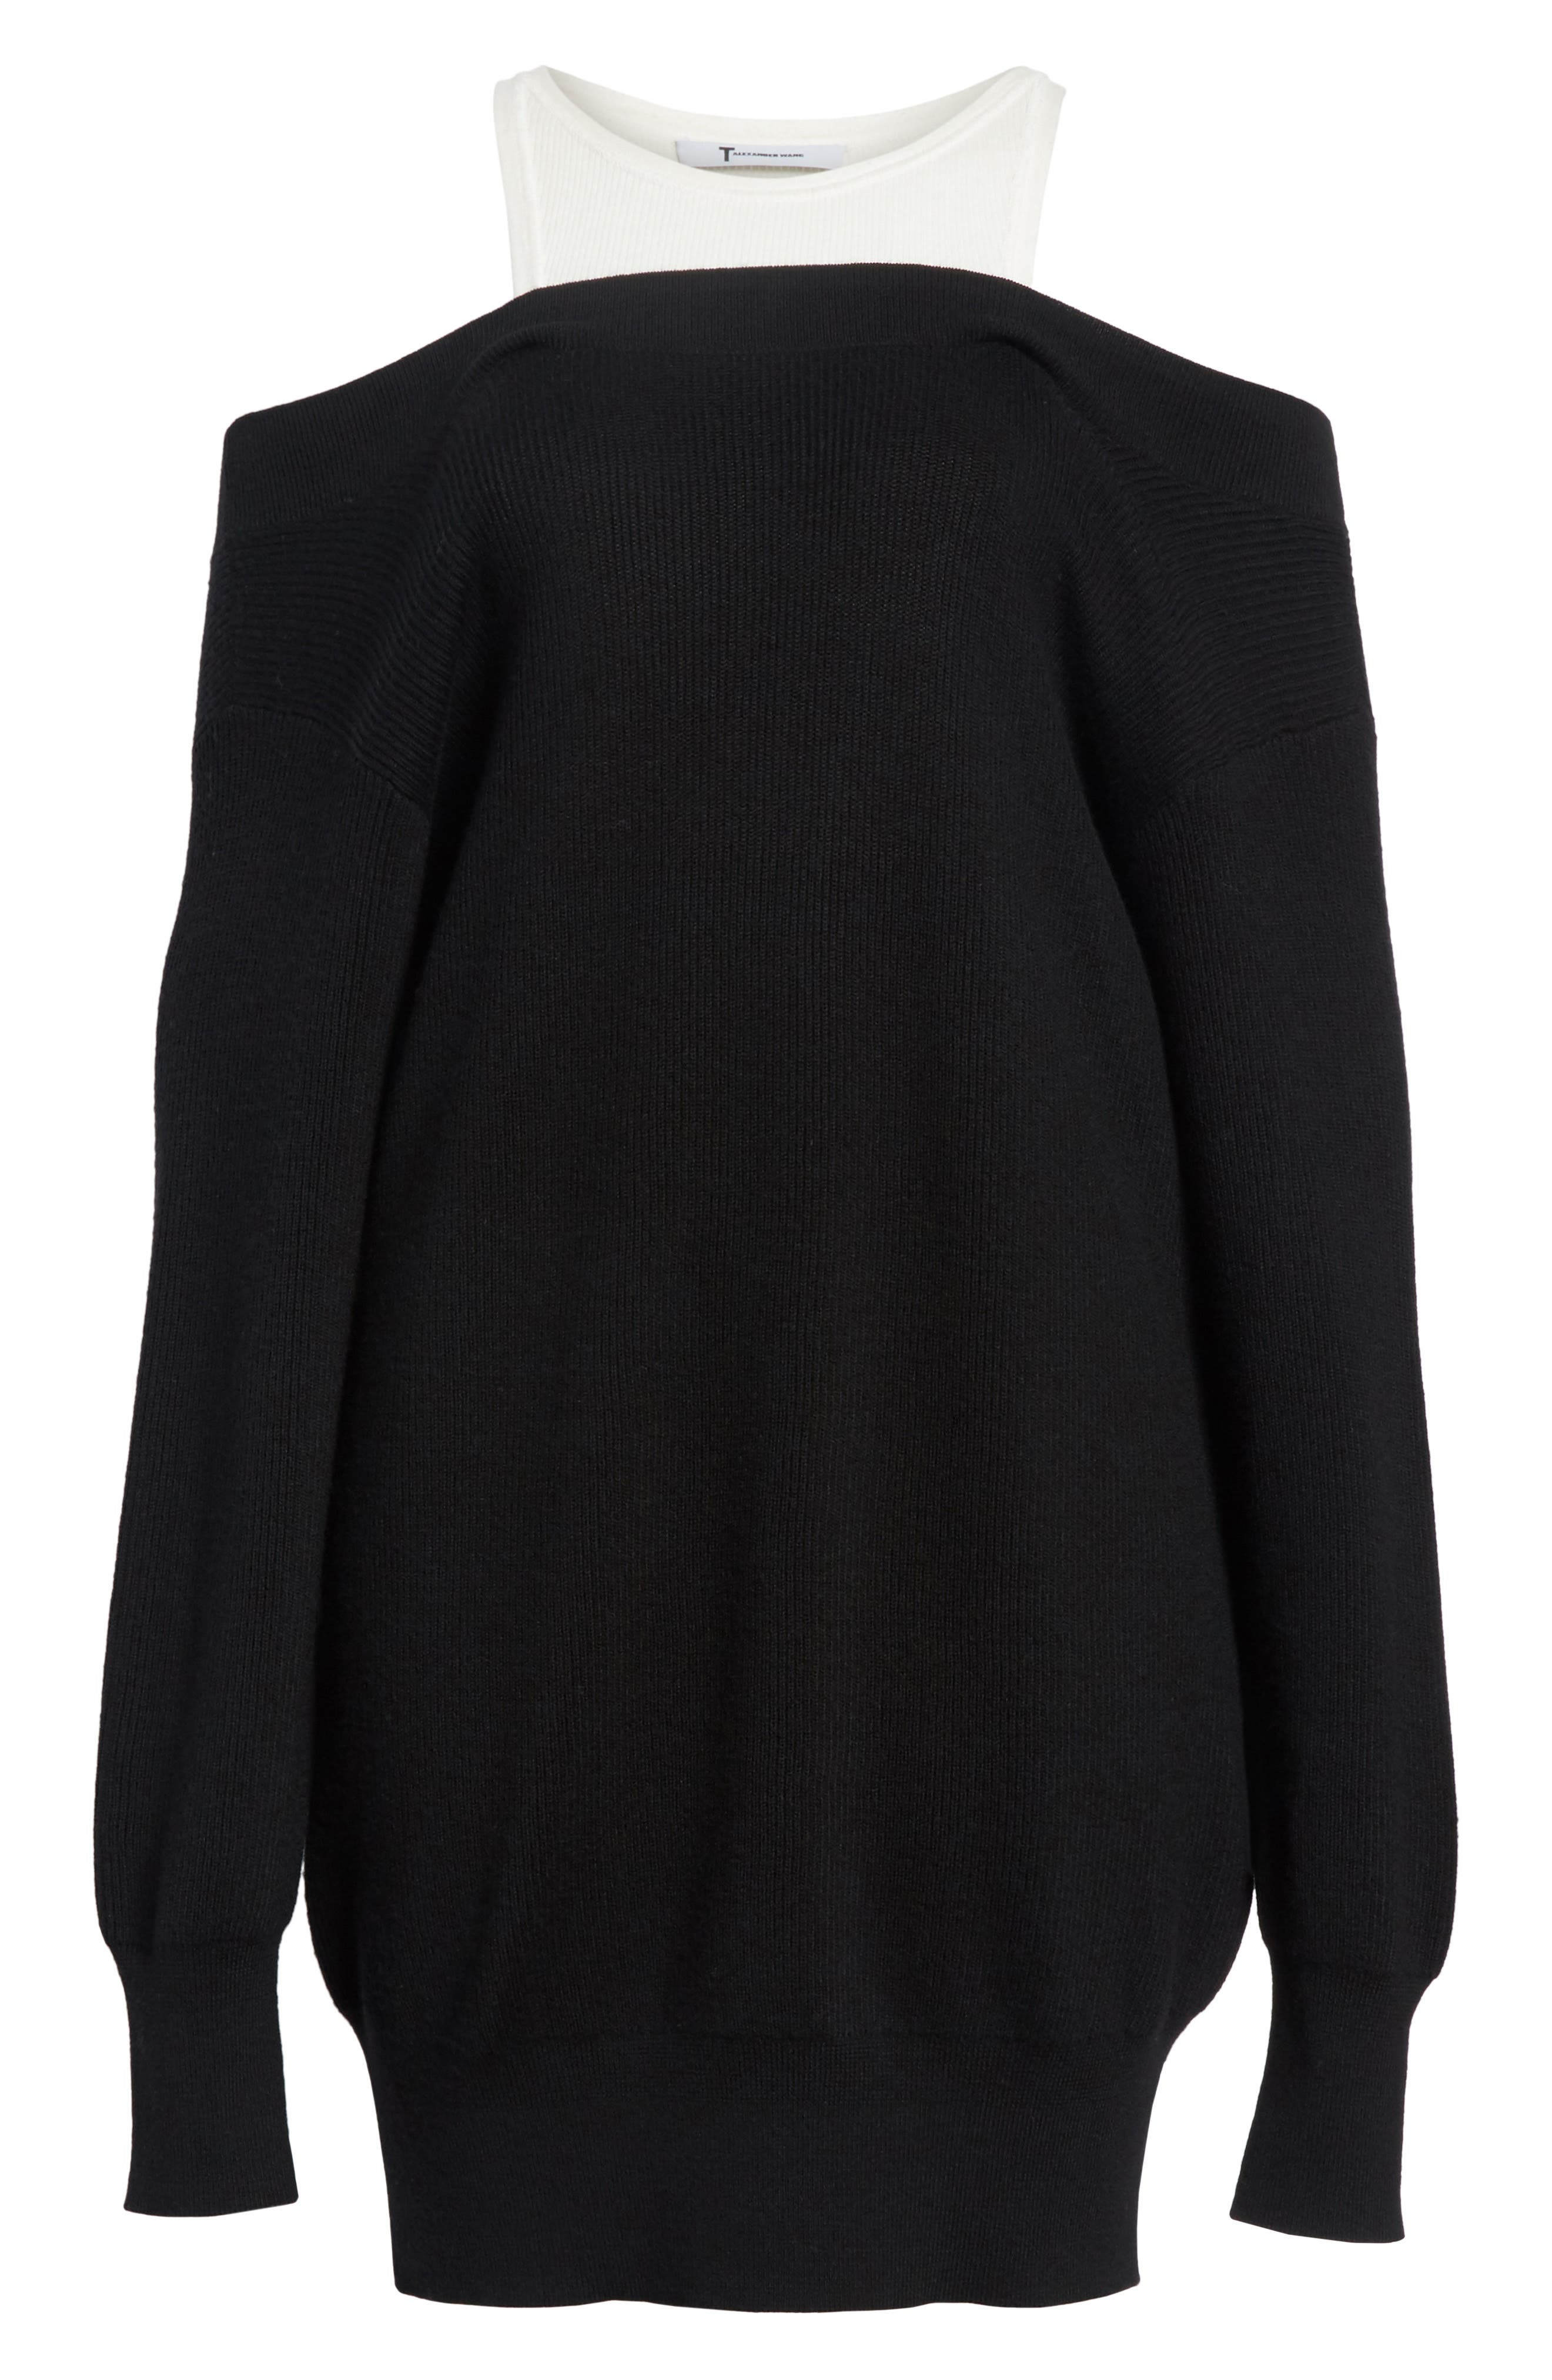 T by Alexander Wang Bi-Layer Knit Dress with Inner Tank,                             Alternate thumbnail 6, color,                             018